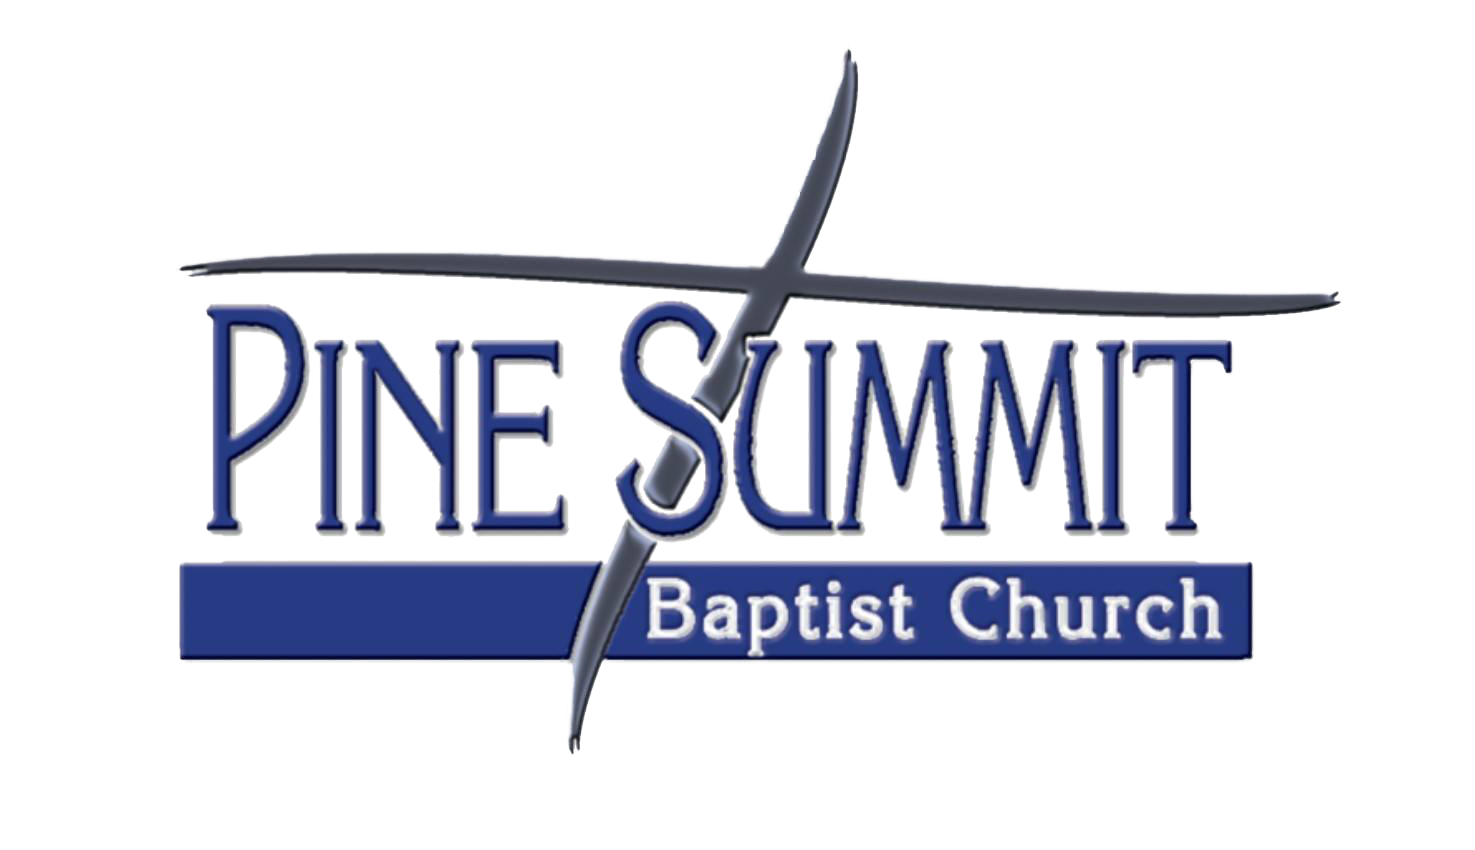 Pine Summit Baptist Church